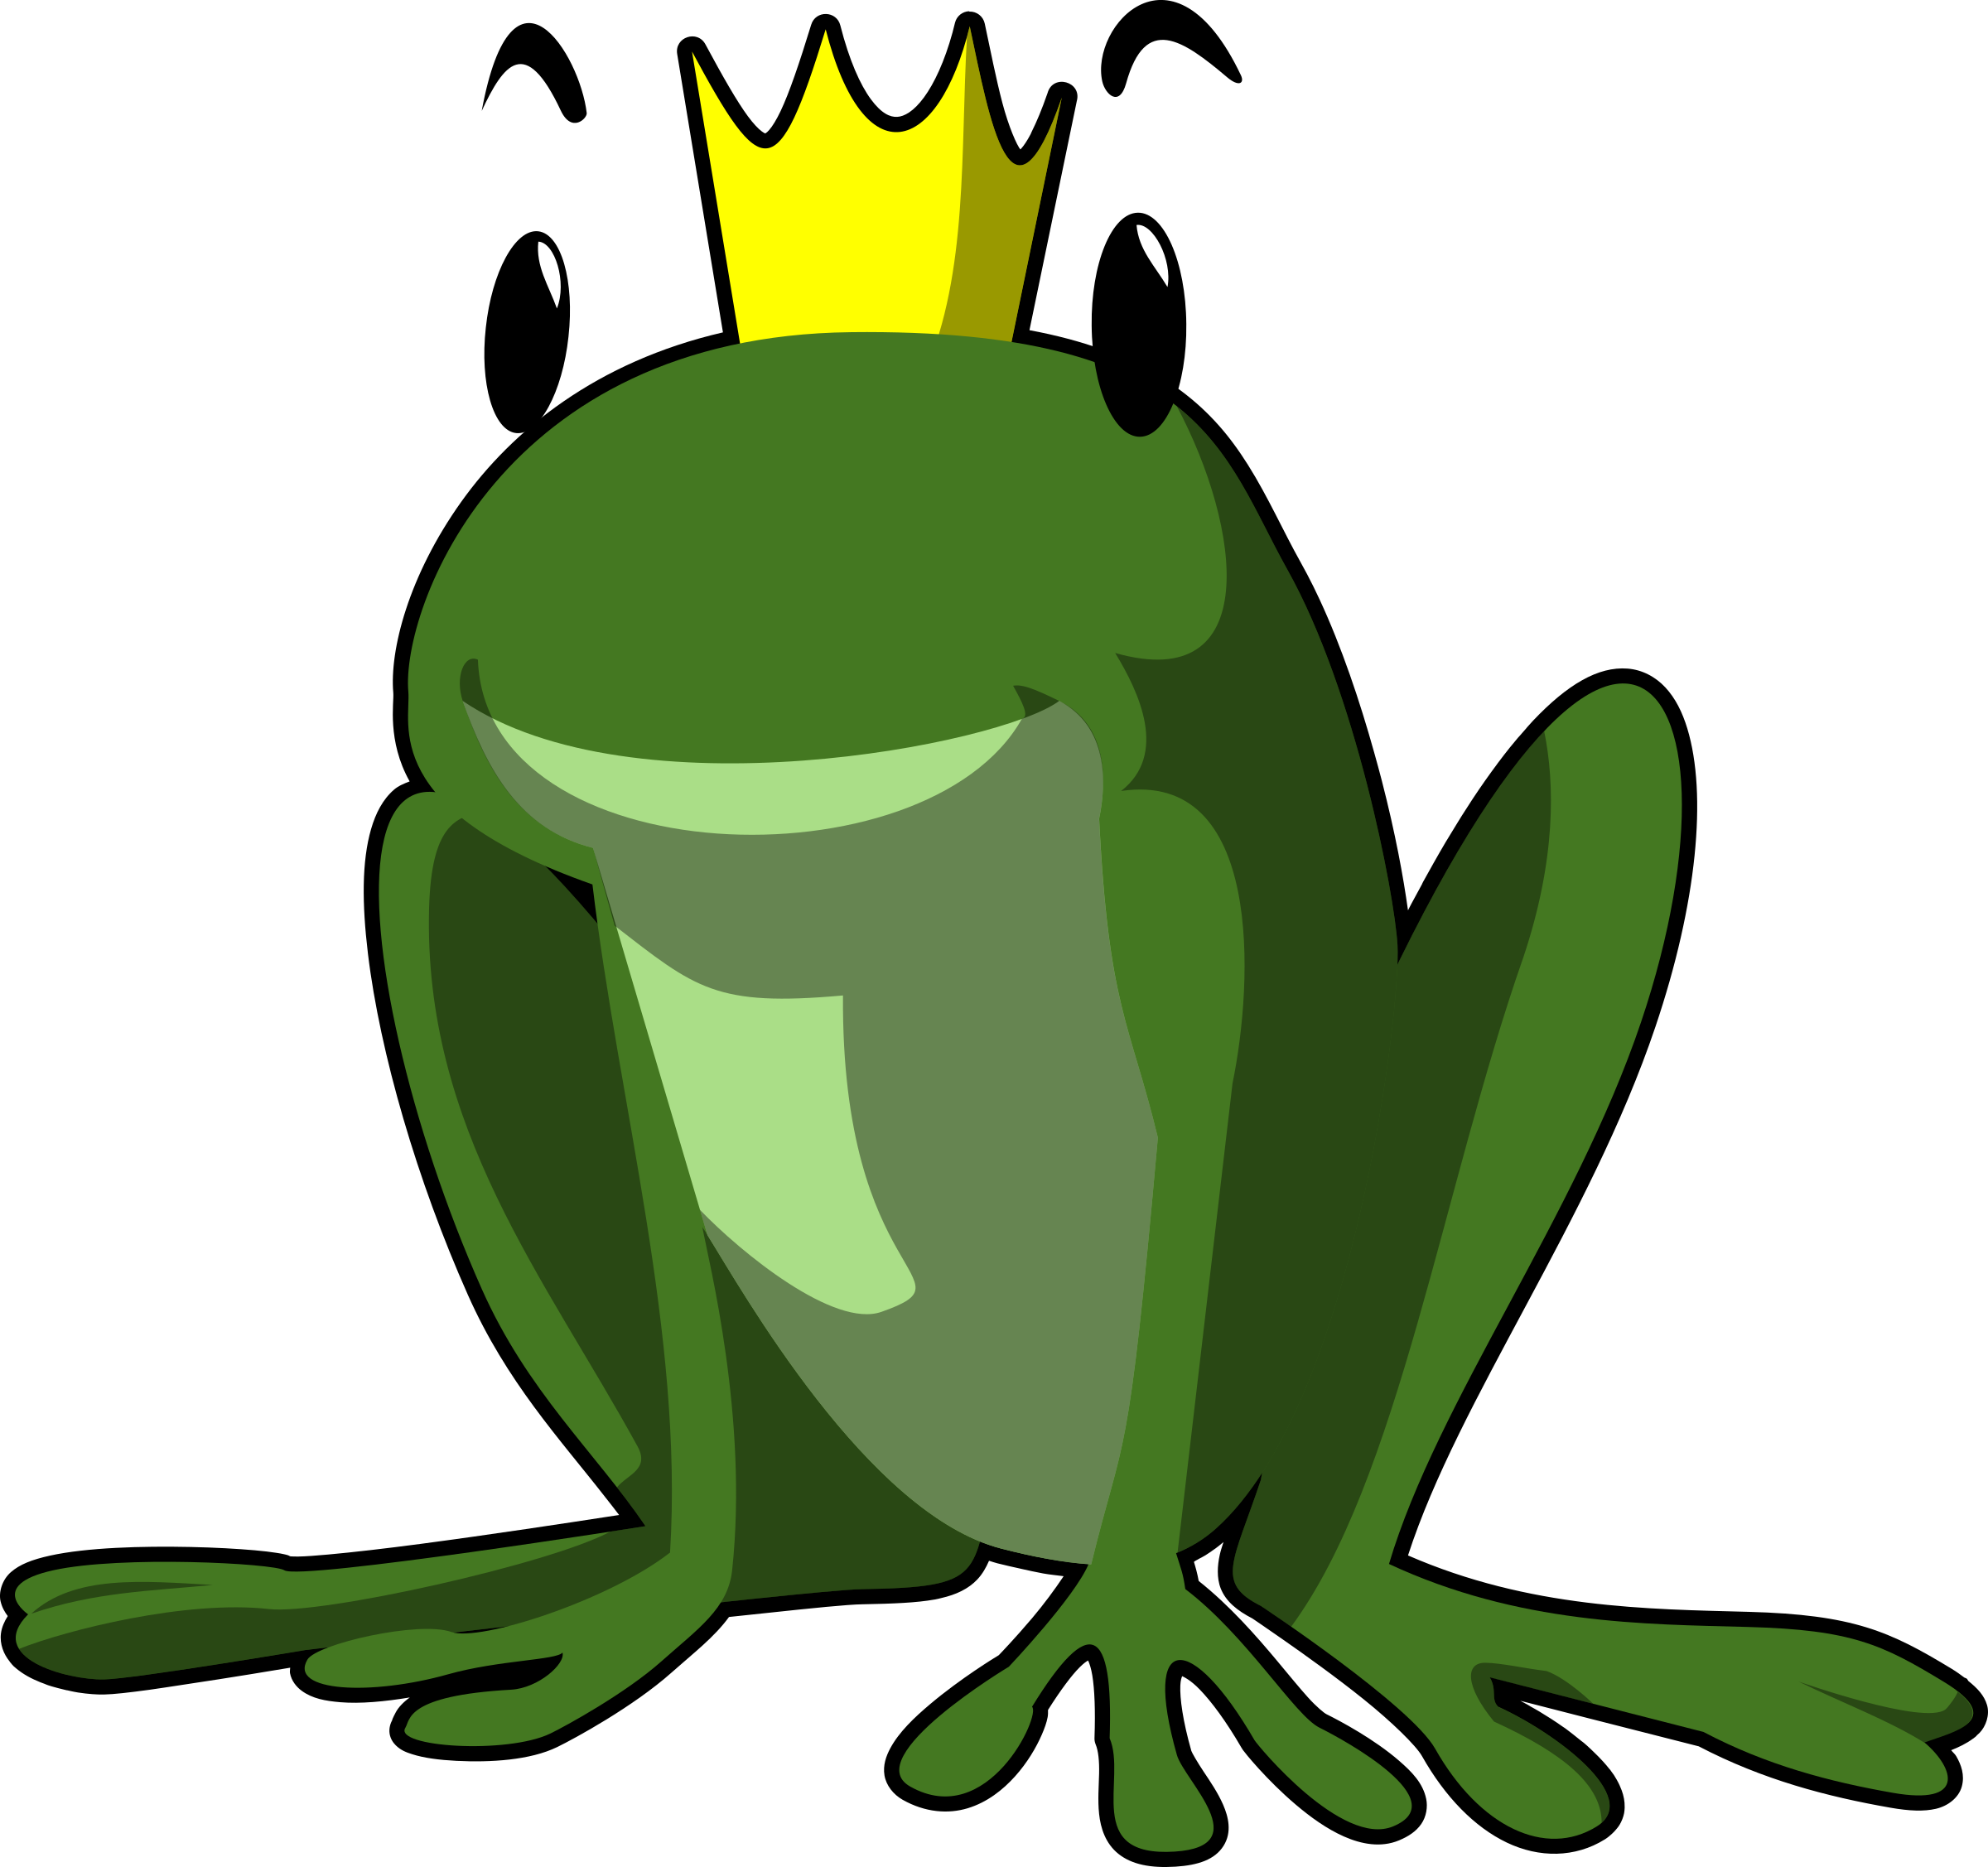 Prince big image png. Crown clipart frog picture freeuse download